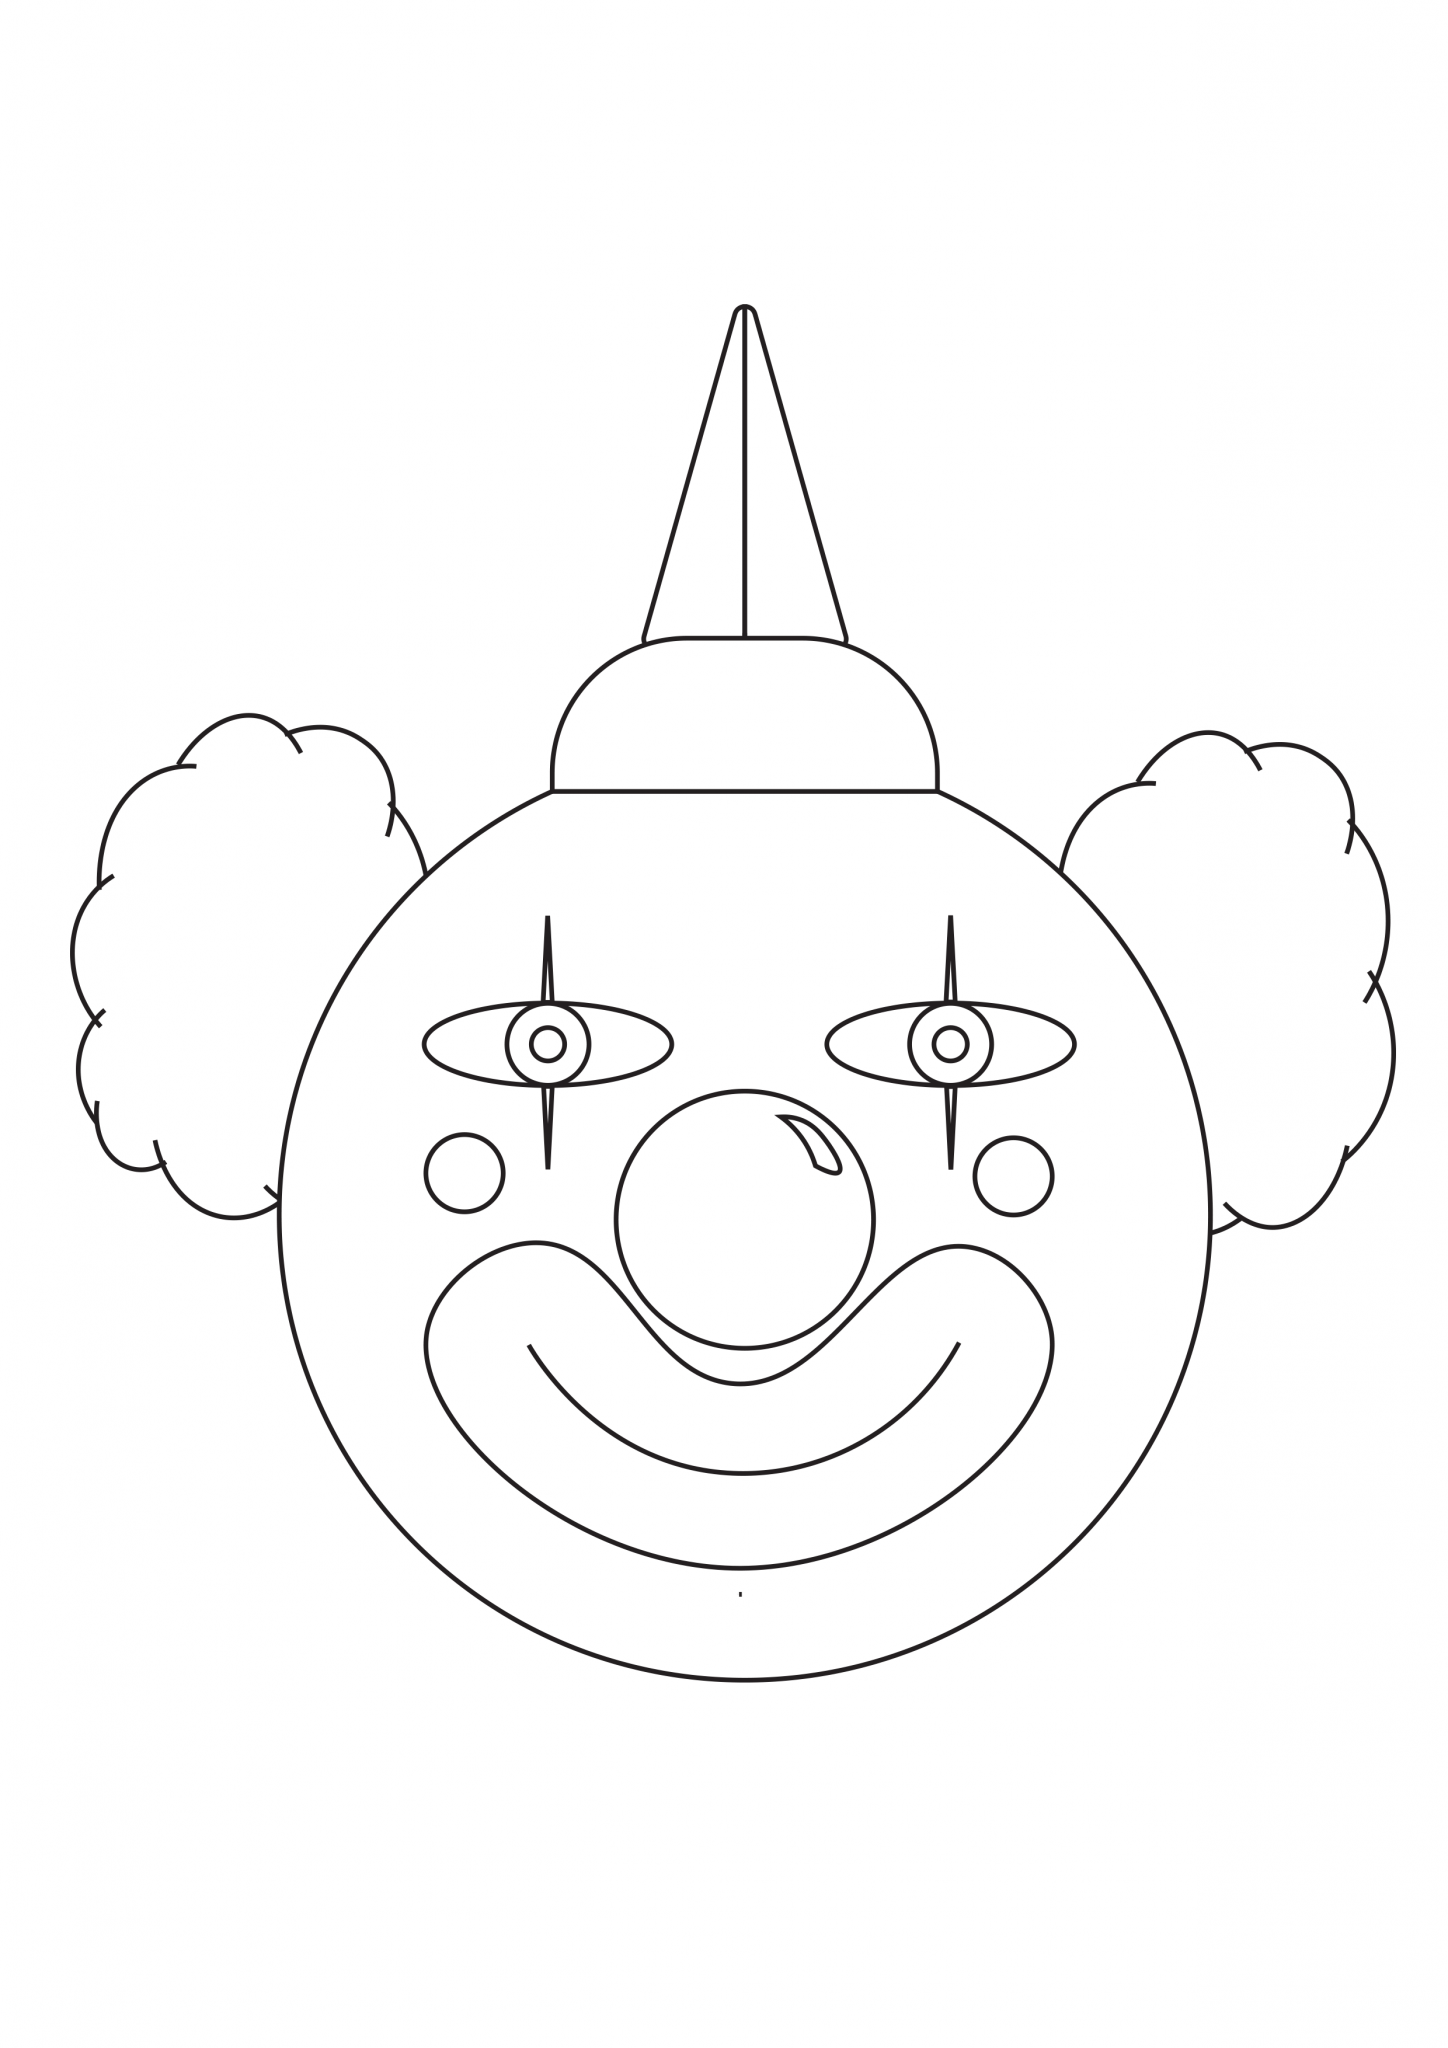 Clown coloring page